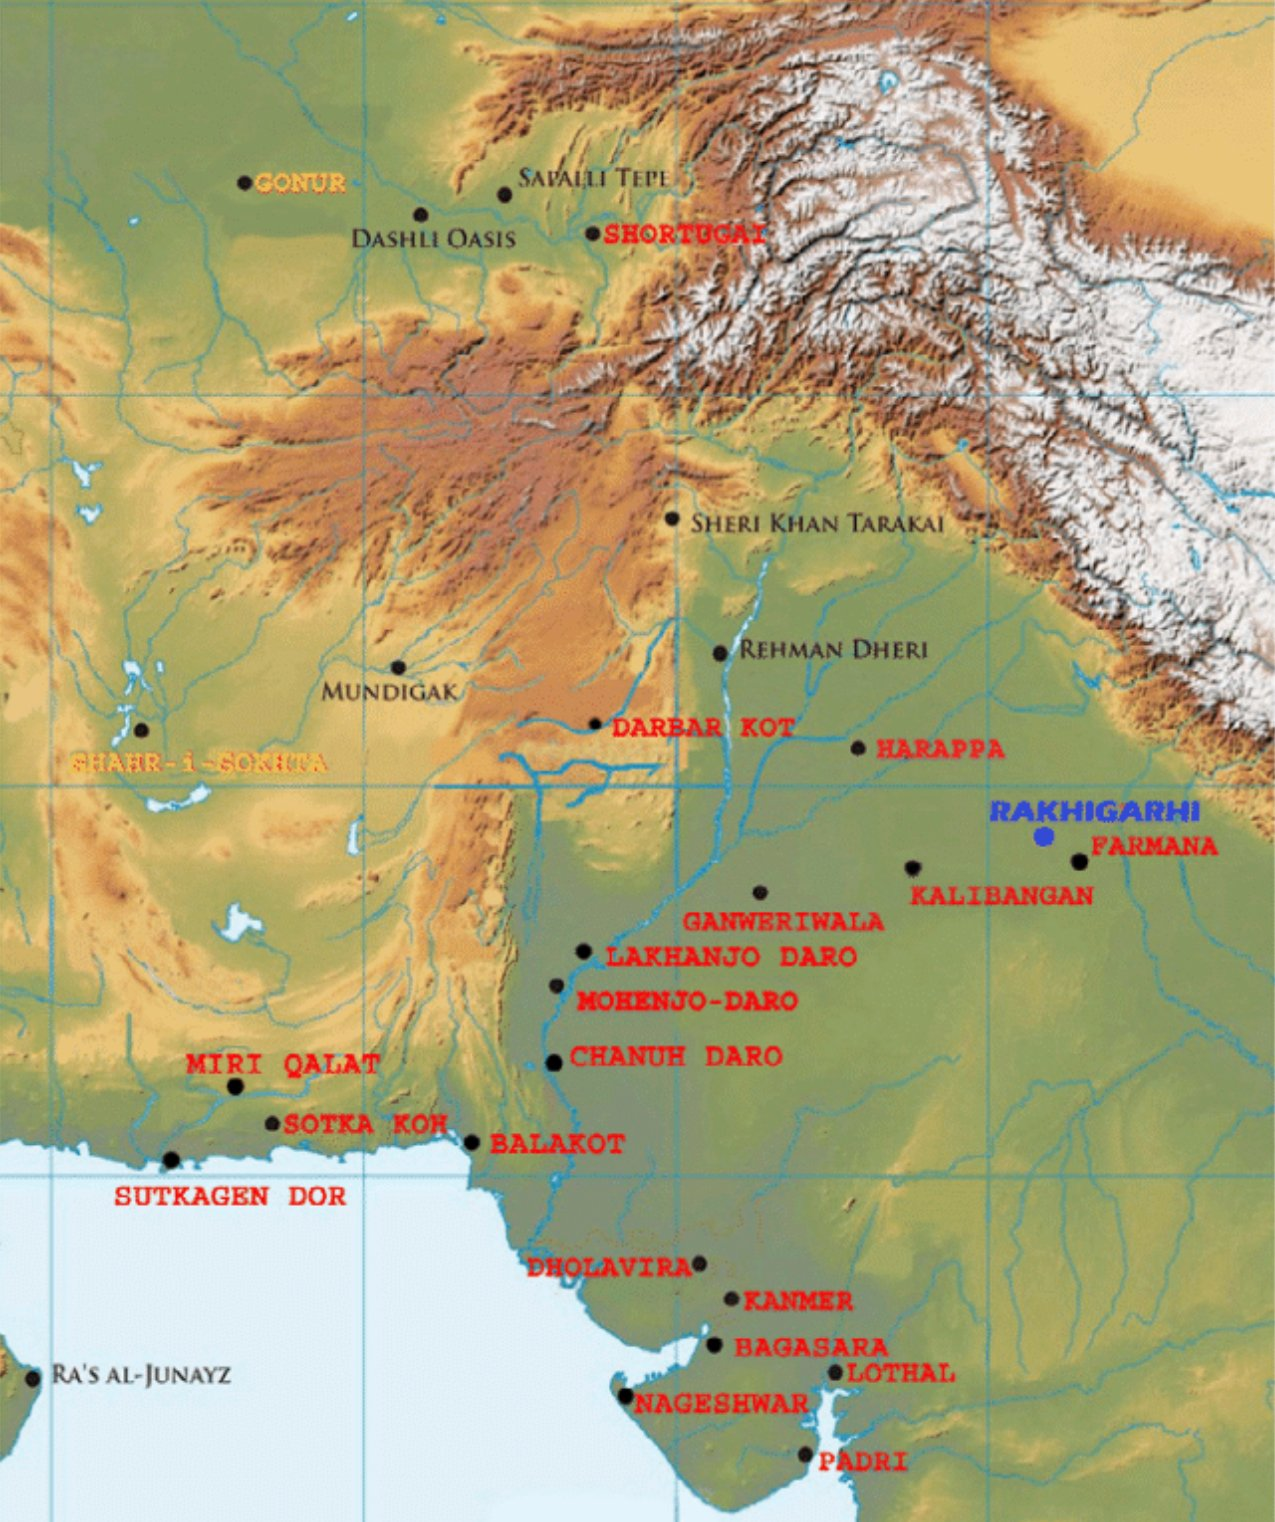 Map of the Indus Valley Civilisation and other significant Harappan sites. (Shinde et al. Cell, 2019)